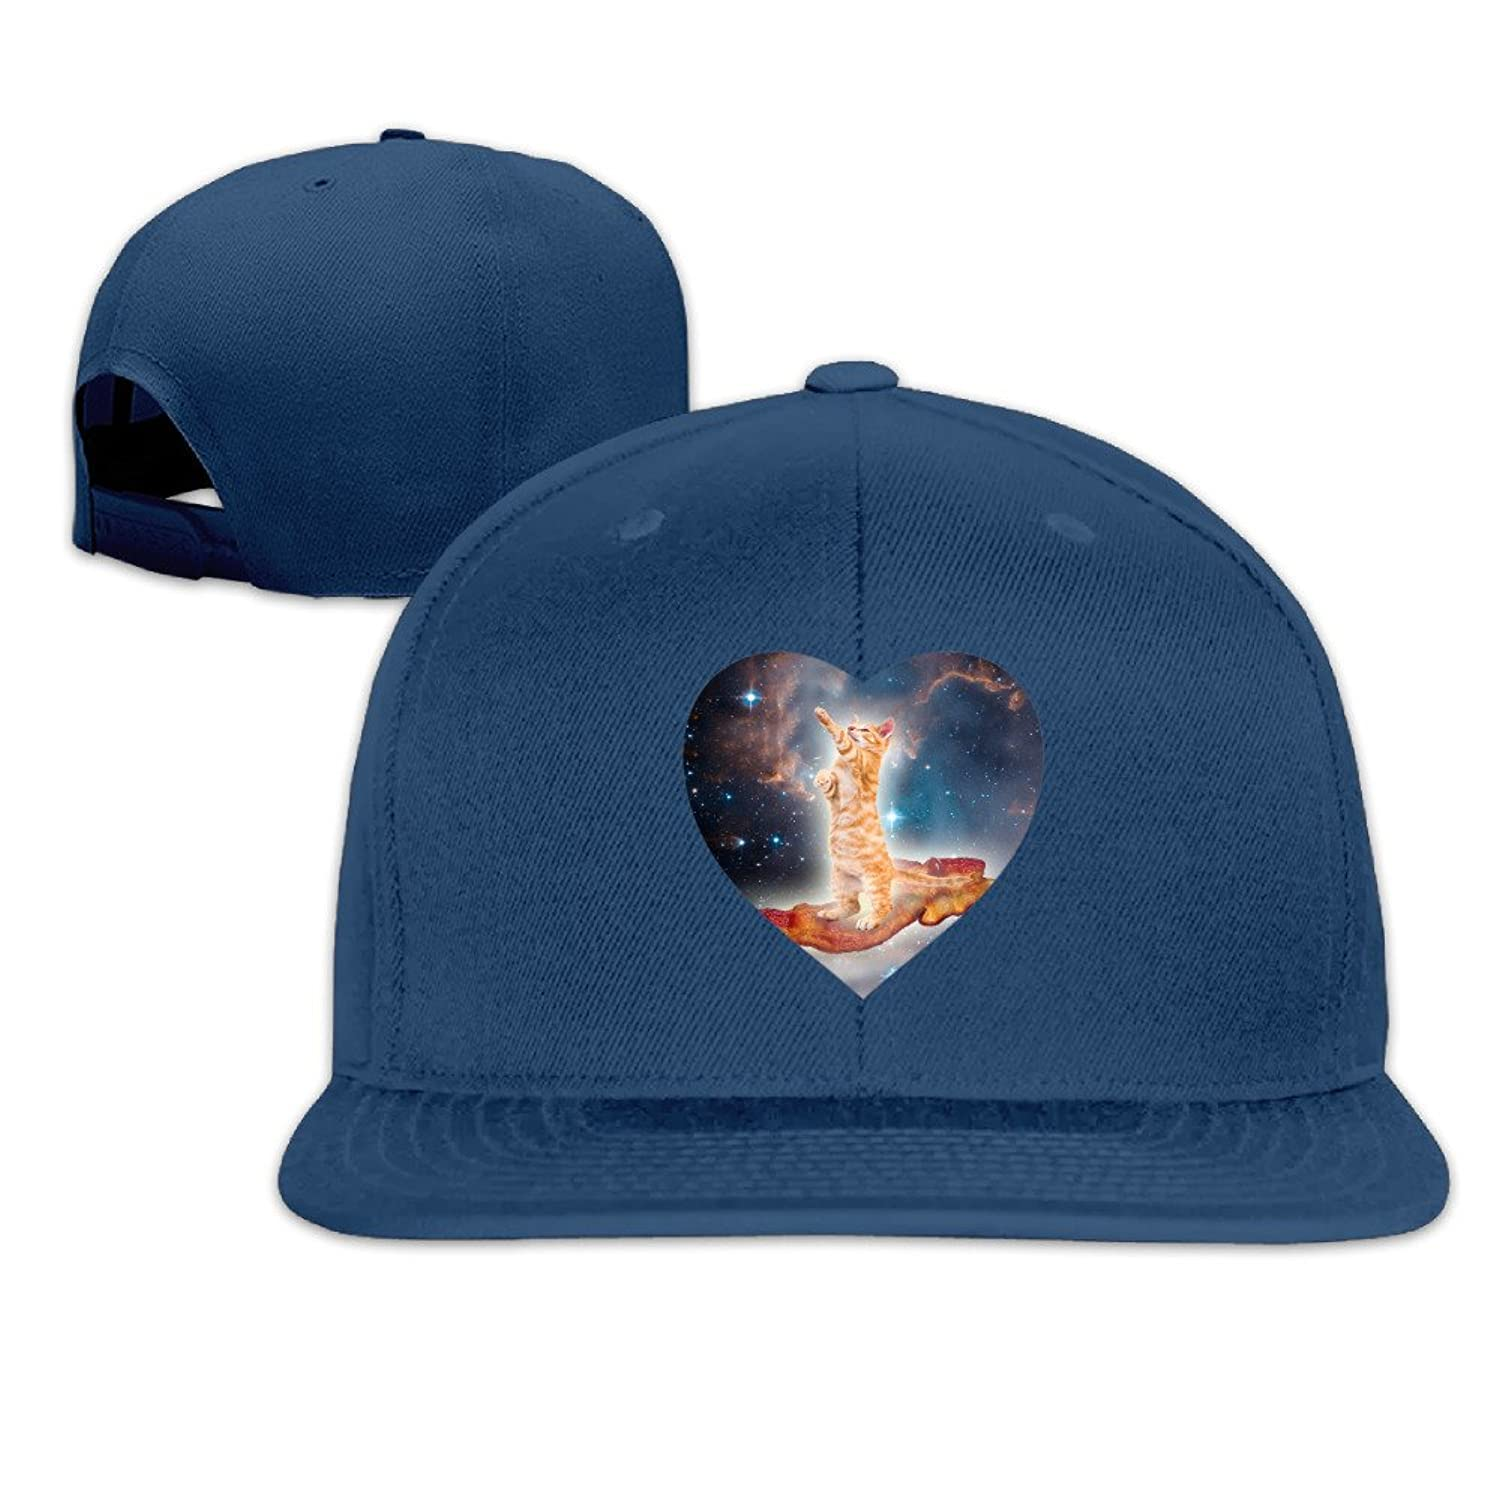 Unisex Fashion Plain Adjustable Bacon Surfing Cat In The Universe Heart Caps Sun Hats Cool Baseball Caps